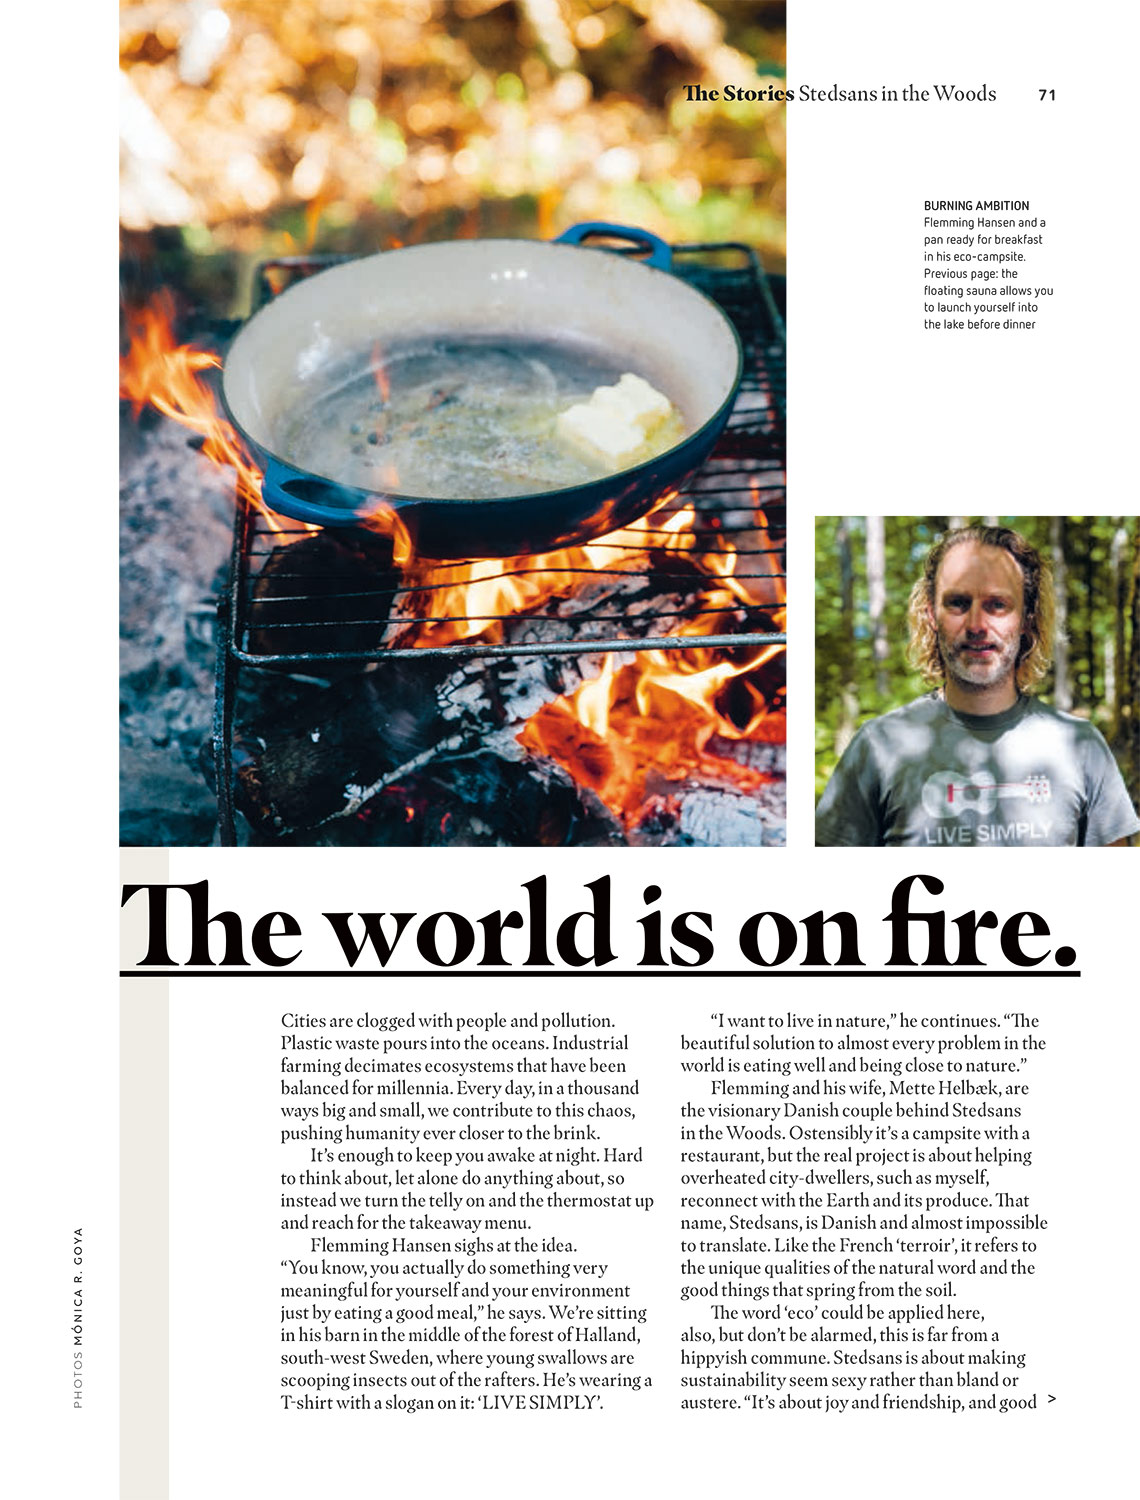 """""""The World Is On Fire"""" - easyJet Traveller October 2018 - photography"""